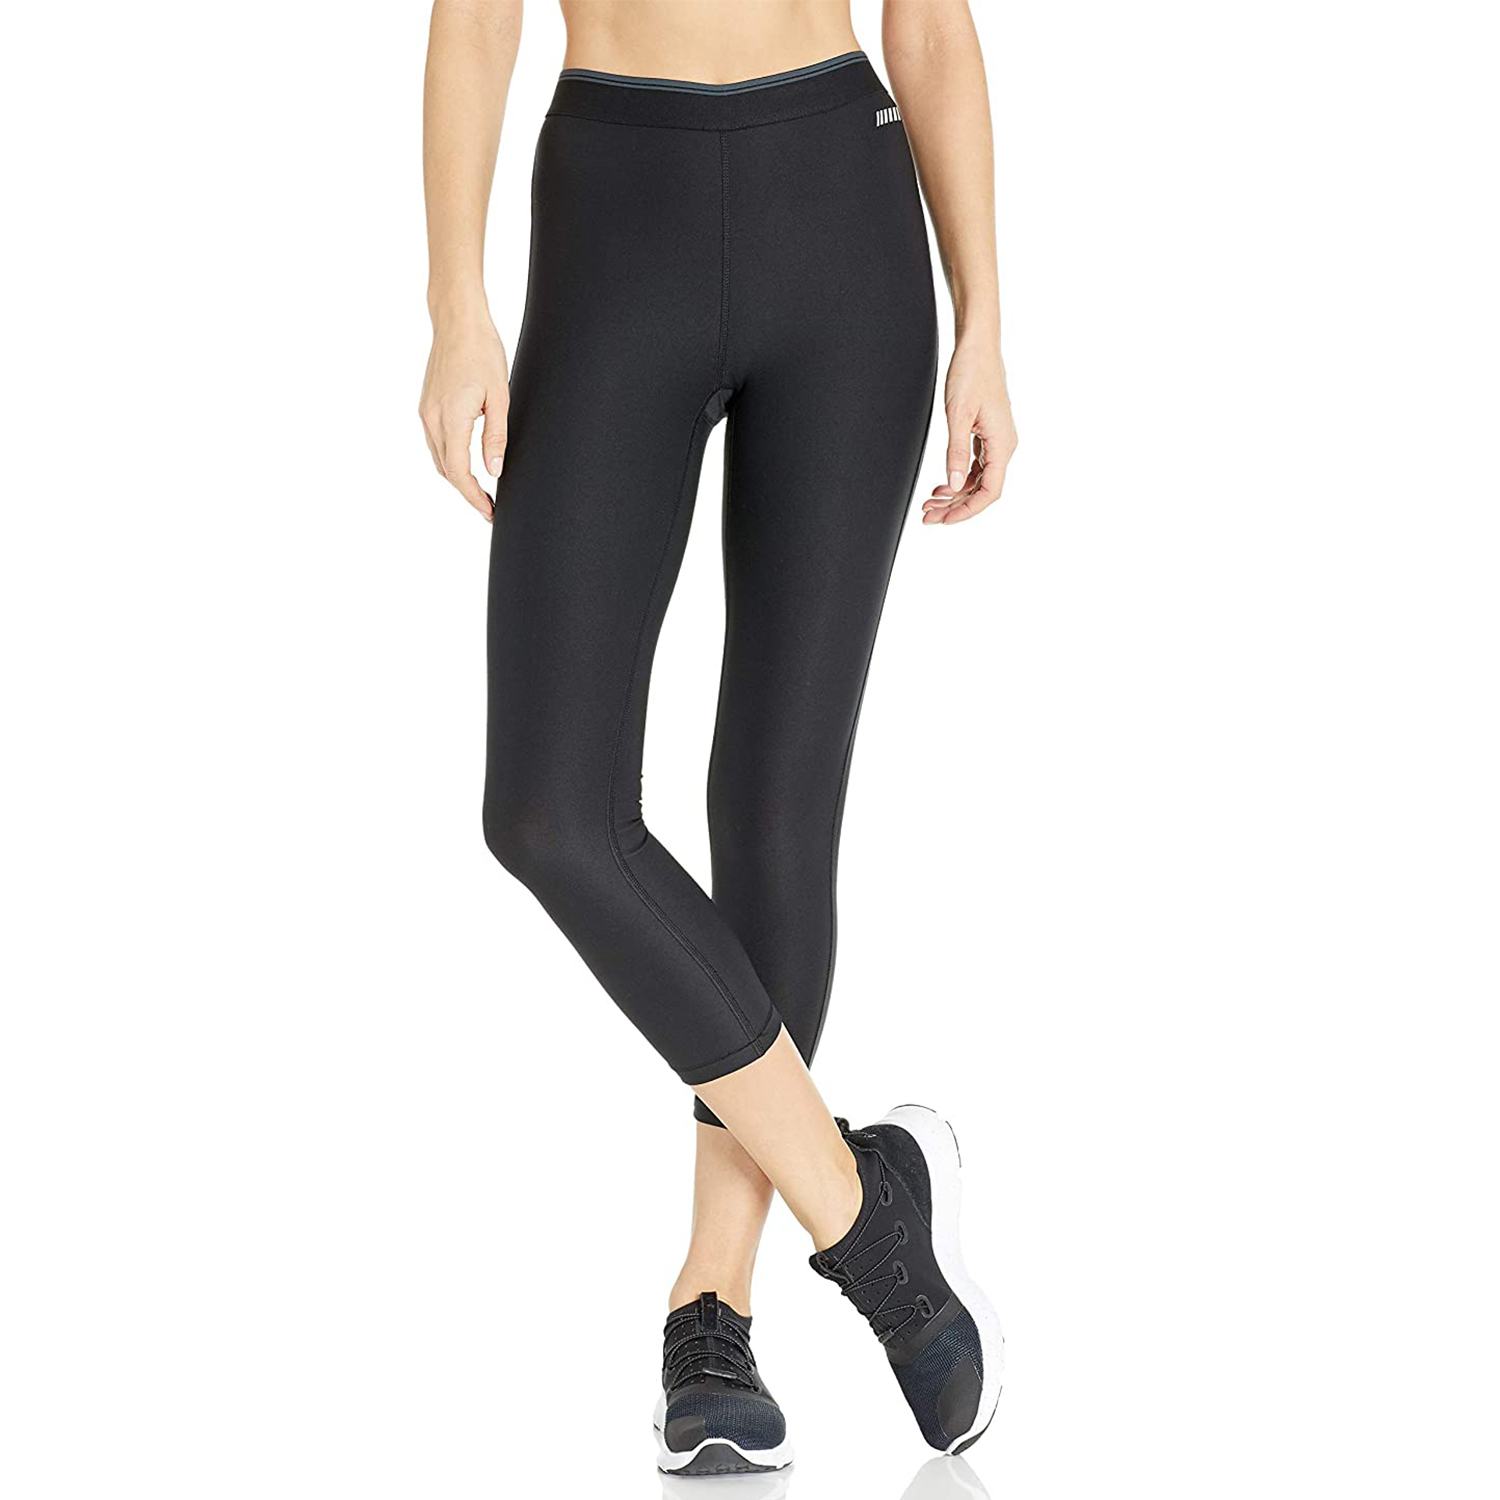 Amazon Essentials Elastic Waist Performance Capri Legging